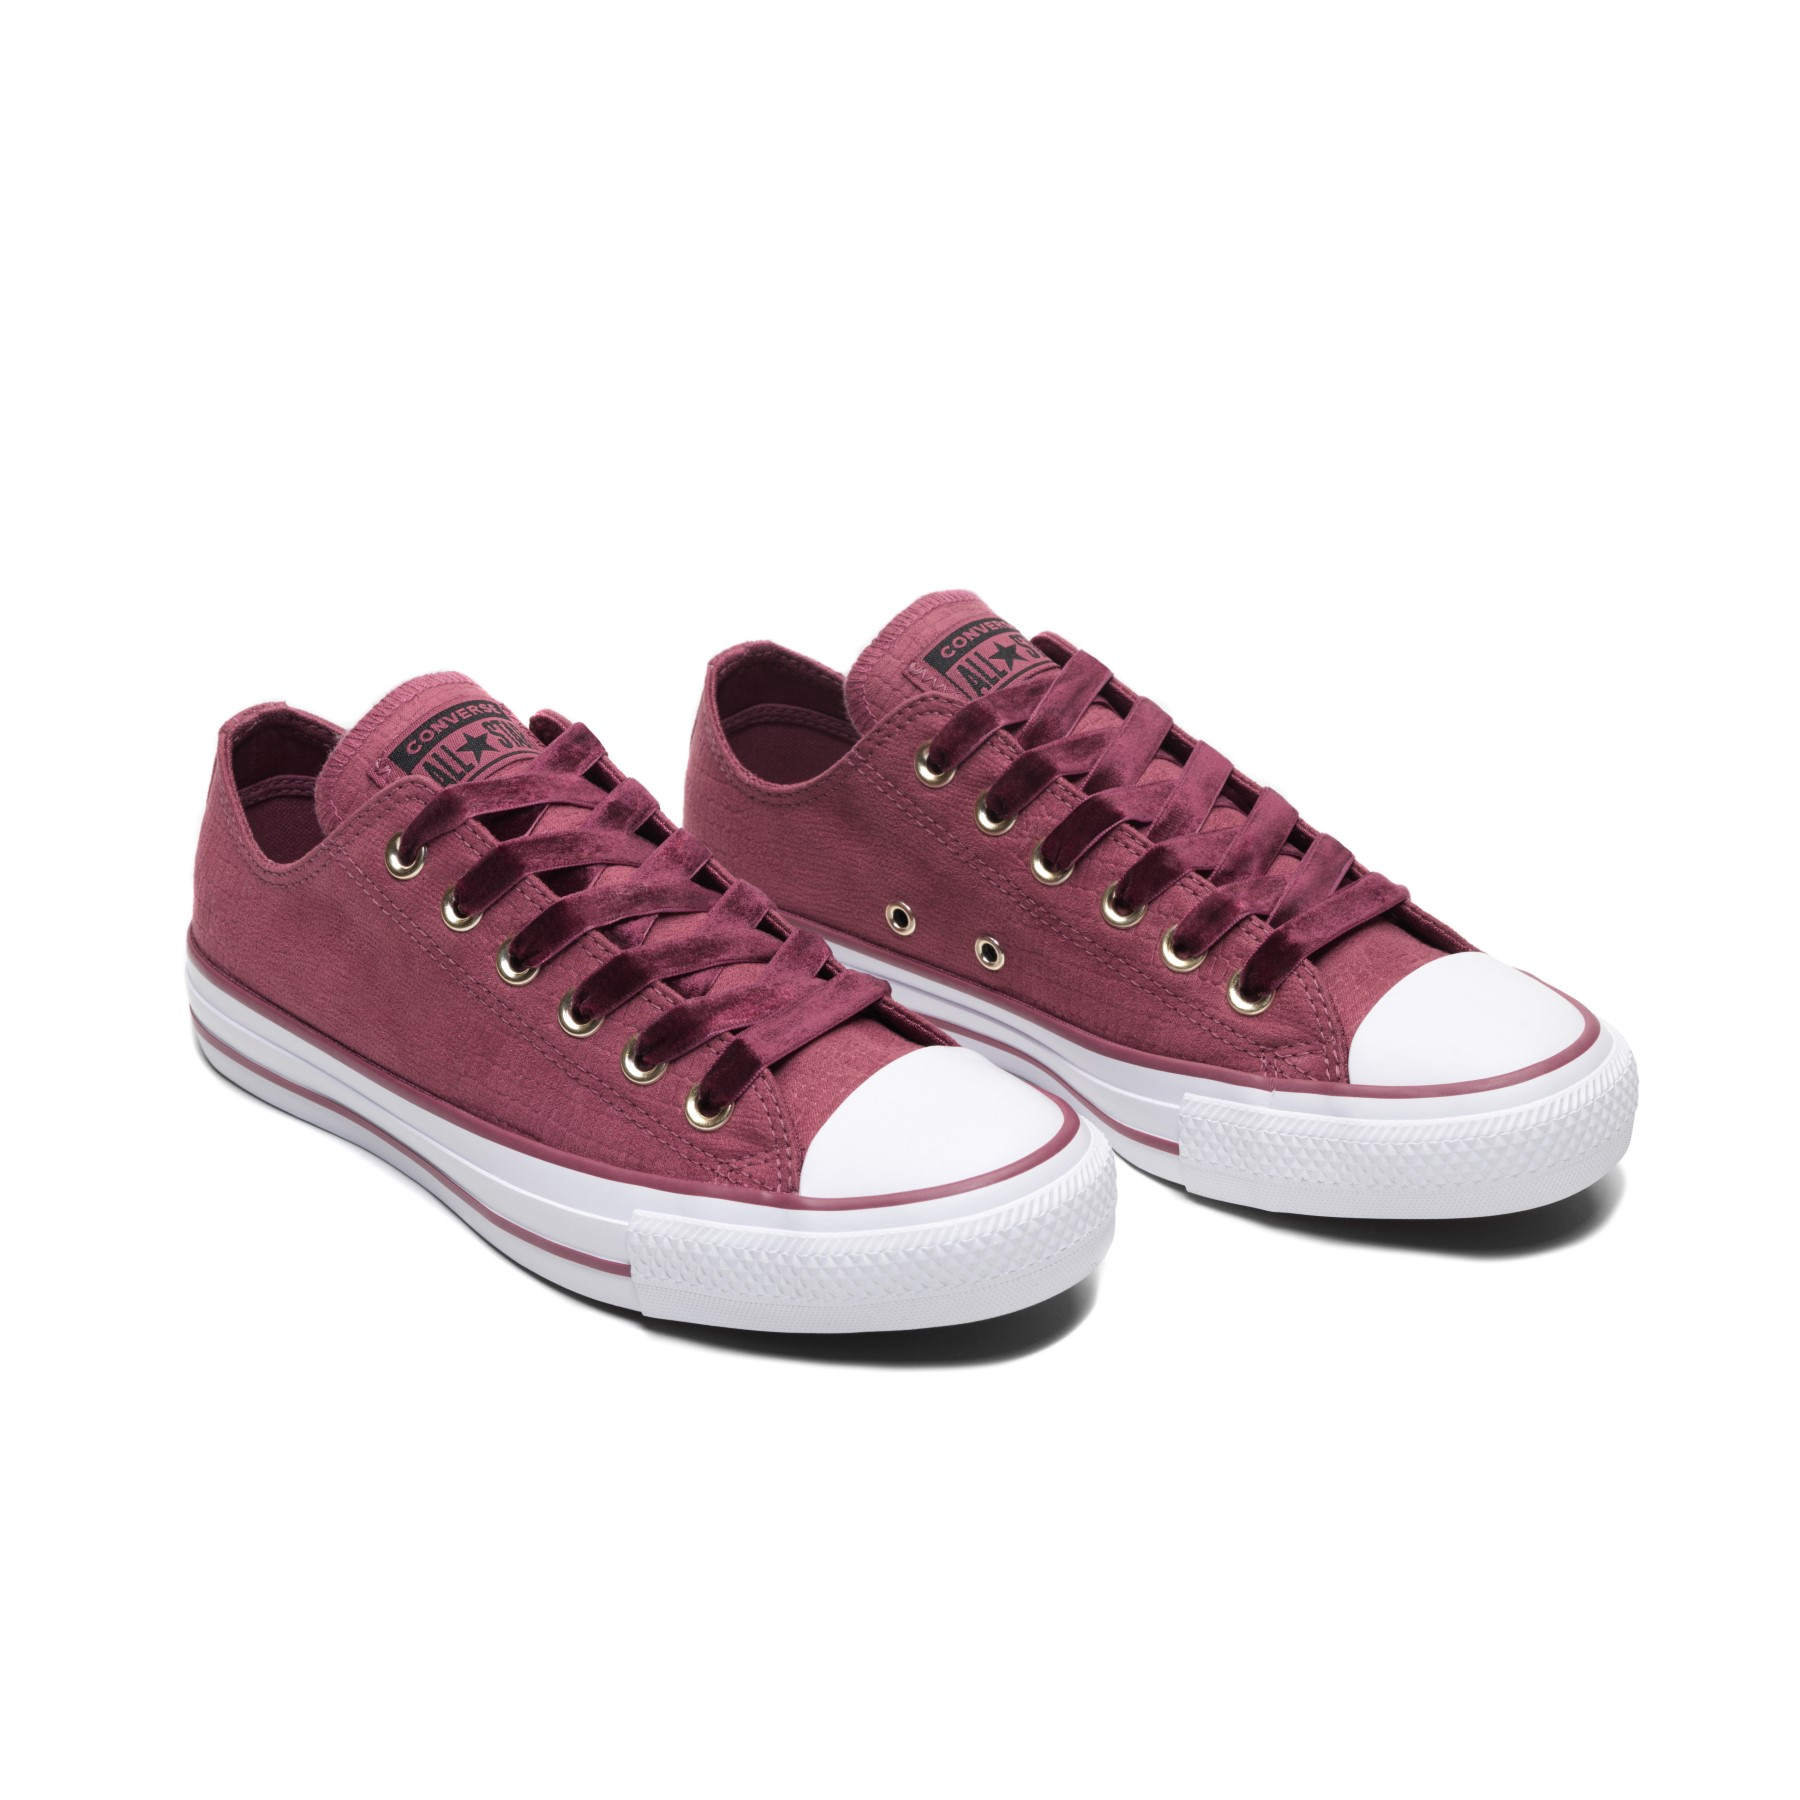 4b69be347d3d Converse Chuck Taylor All Star OX Vintage Wine Sneakers - Women´s shoes •  Differenta.com